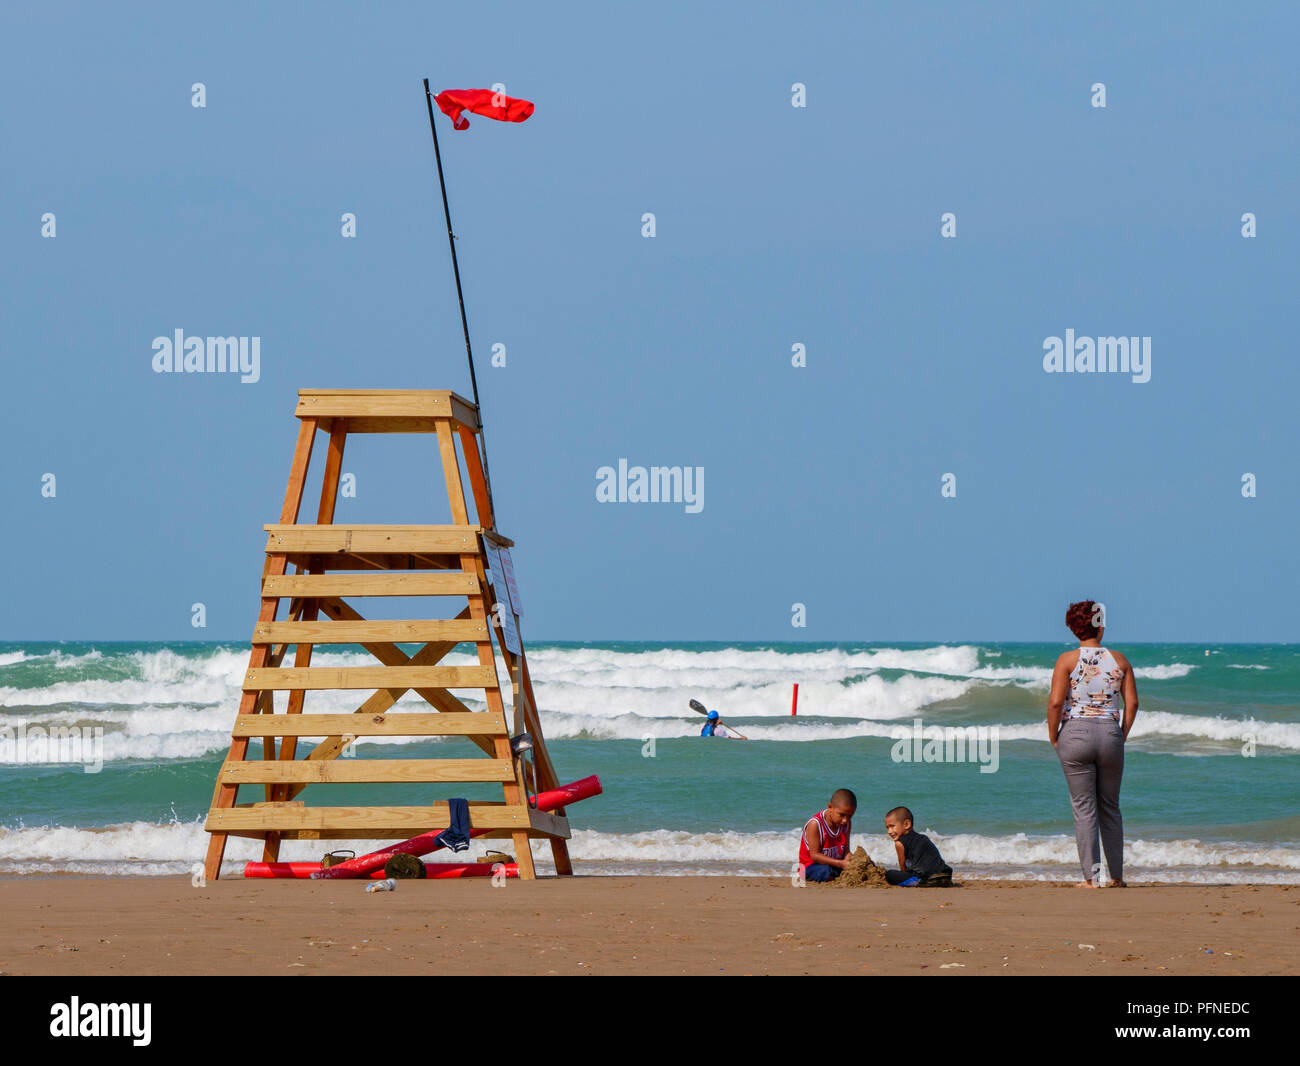 Chicago, Illinois, USA. 21st August 2018. Two children play in the sand while their mother stands by and a kayaker braves the waves at Montrose Beach. A red flag flies from a lifeguard stand indicating unsafe swiiming conditions caused by high surf and rip currents. Stiff northeast winds whipped up surf on Lake Michigan, bringing out kayakers, kite surfers and wave watchers. Credit: Todd Bannor/Alamy Live News Stock Photo